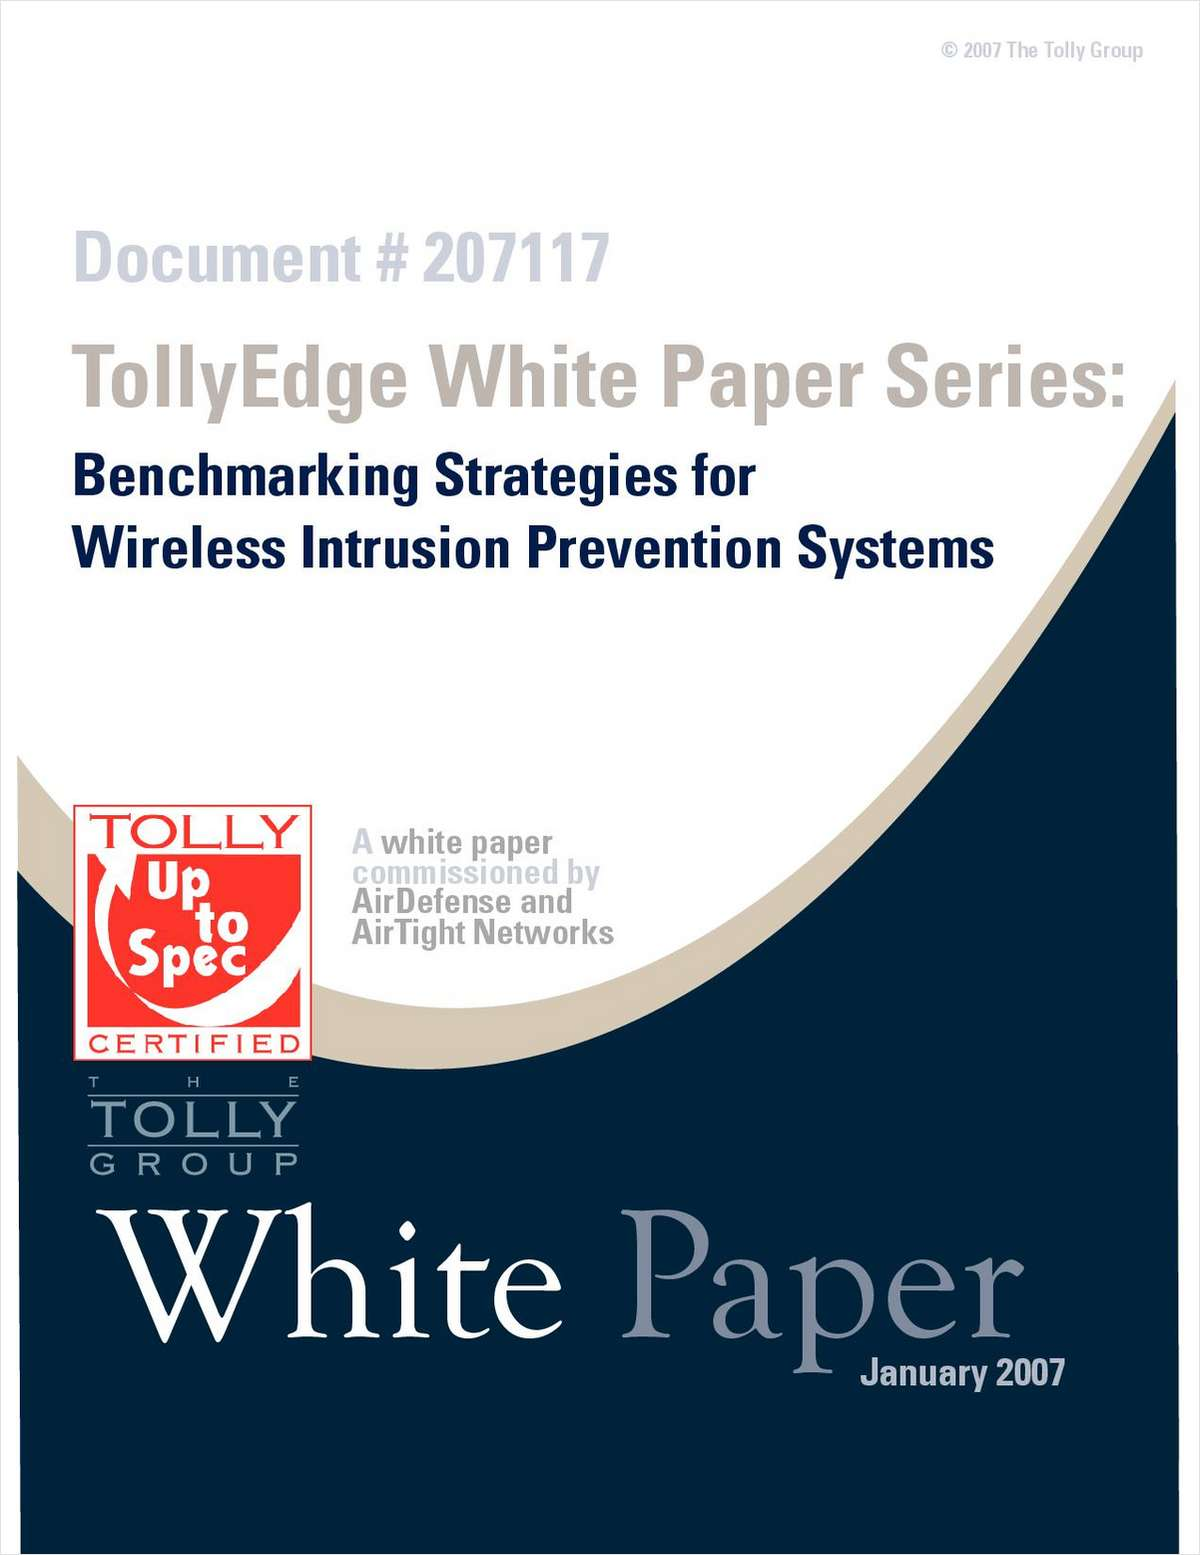 Benchmarking Strategies for Wireless Intrusion Prevention Systems